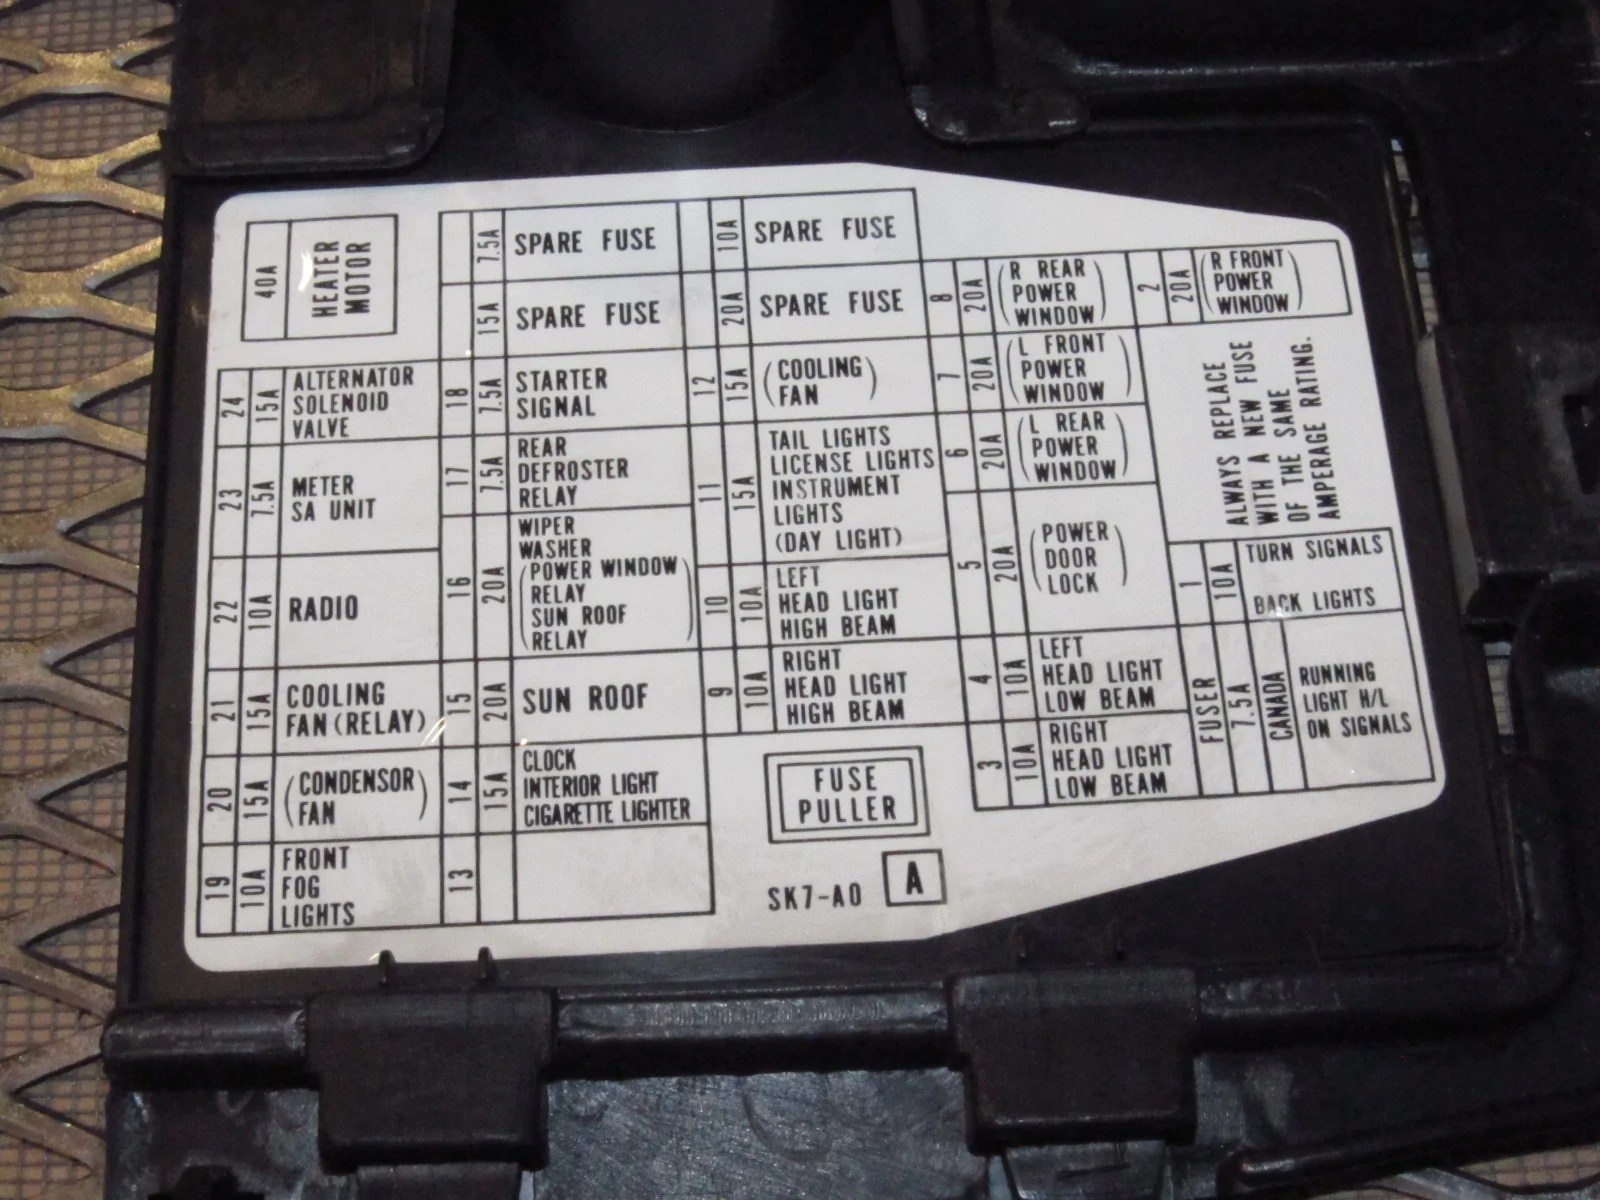 medium resolution of 91 integra fuse box diagram wiring diagram a693 acura integra fuse box wiring wiring diagrams lol